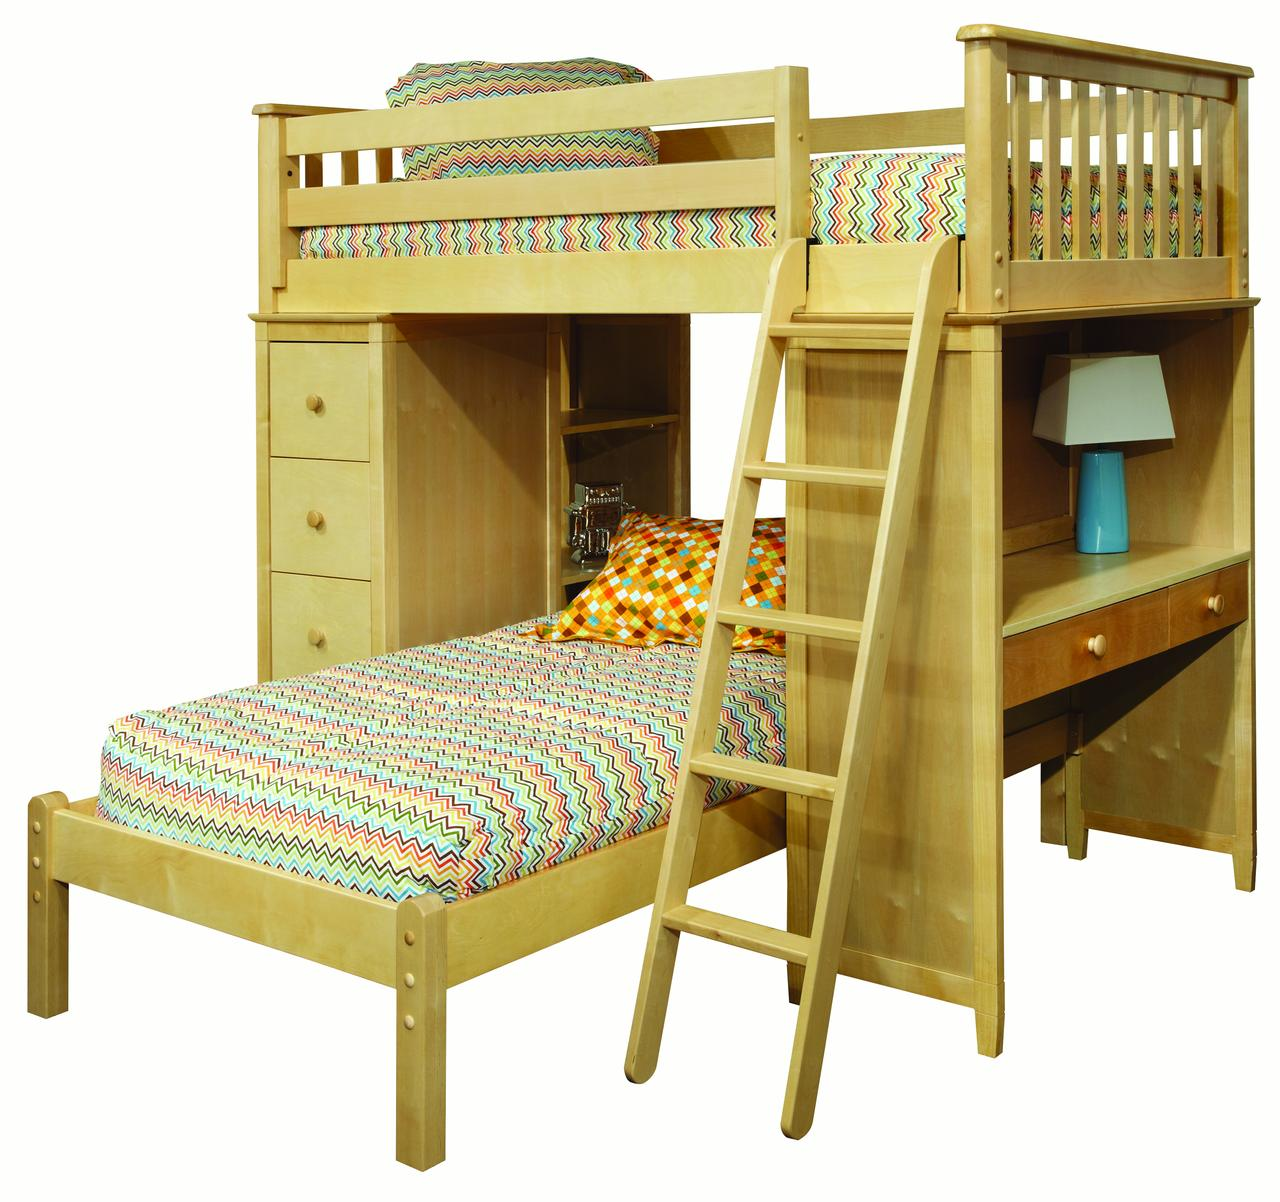 Mission SSS Loft Bed with Desk, Bookcase, Drawers and Lower Platform Twin Bed, Natural